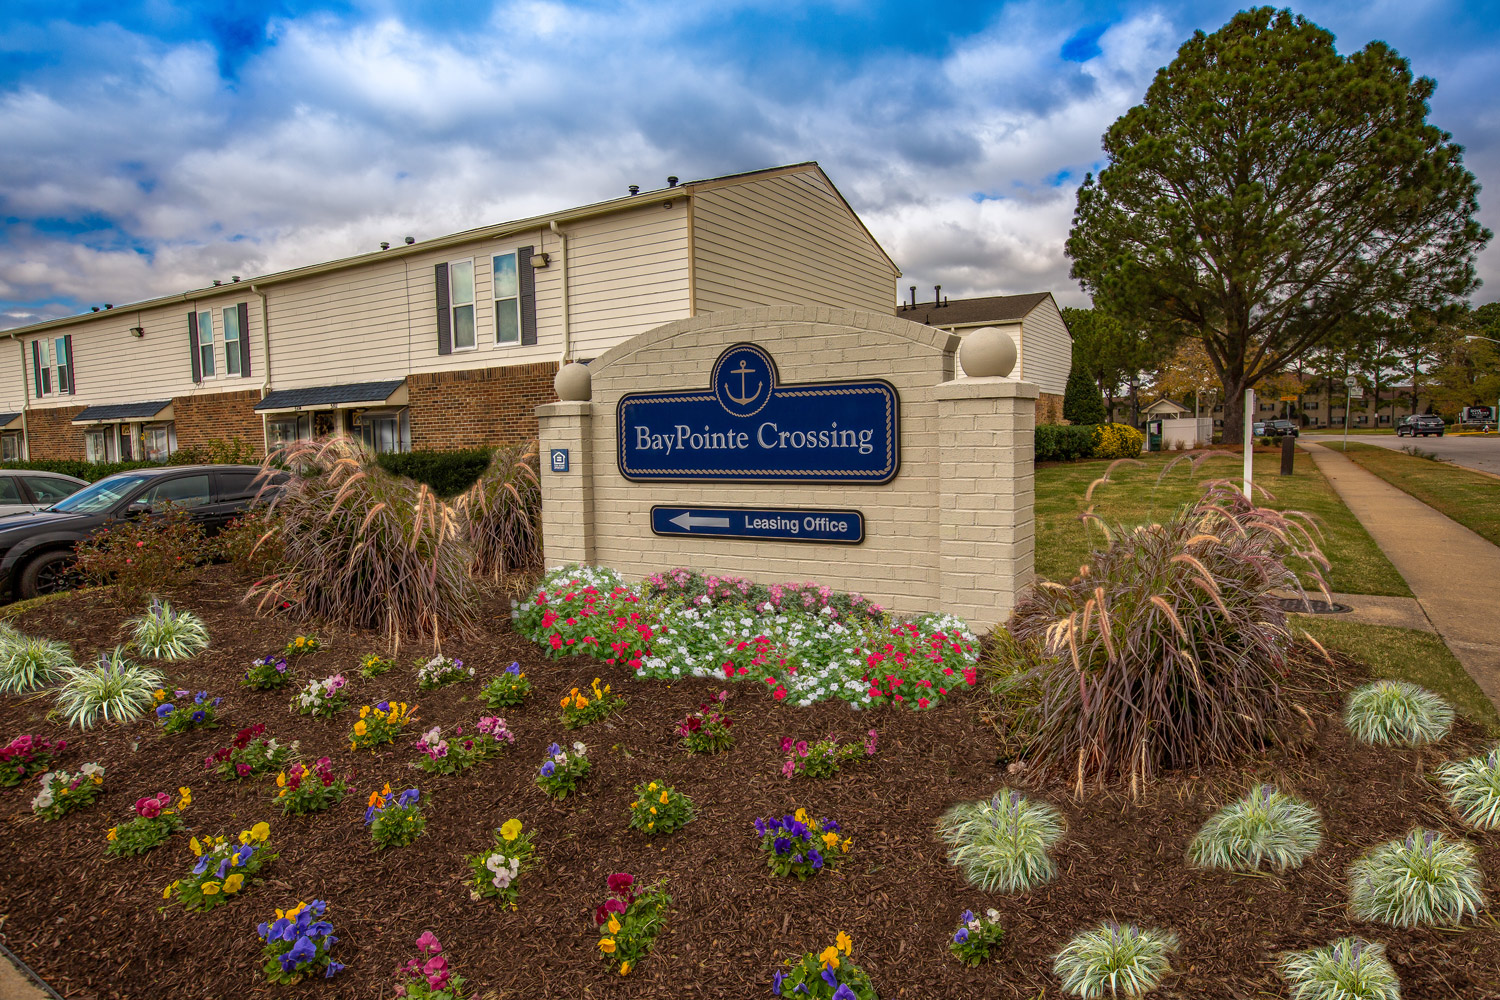 A pleasant access at BayPointe Crossing Apartments in Virginia Beach, Virginia